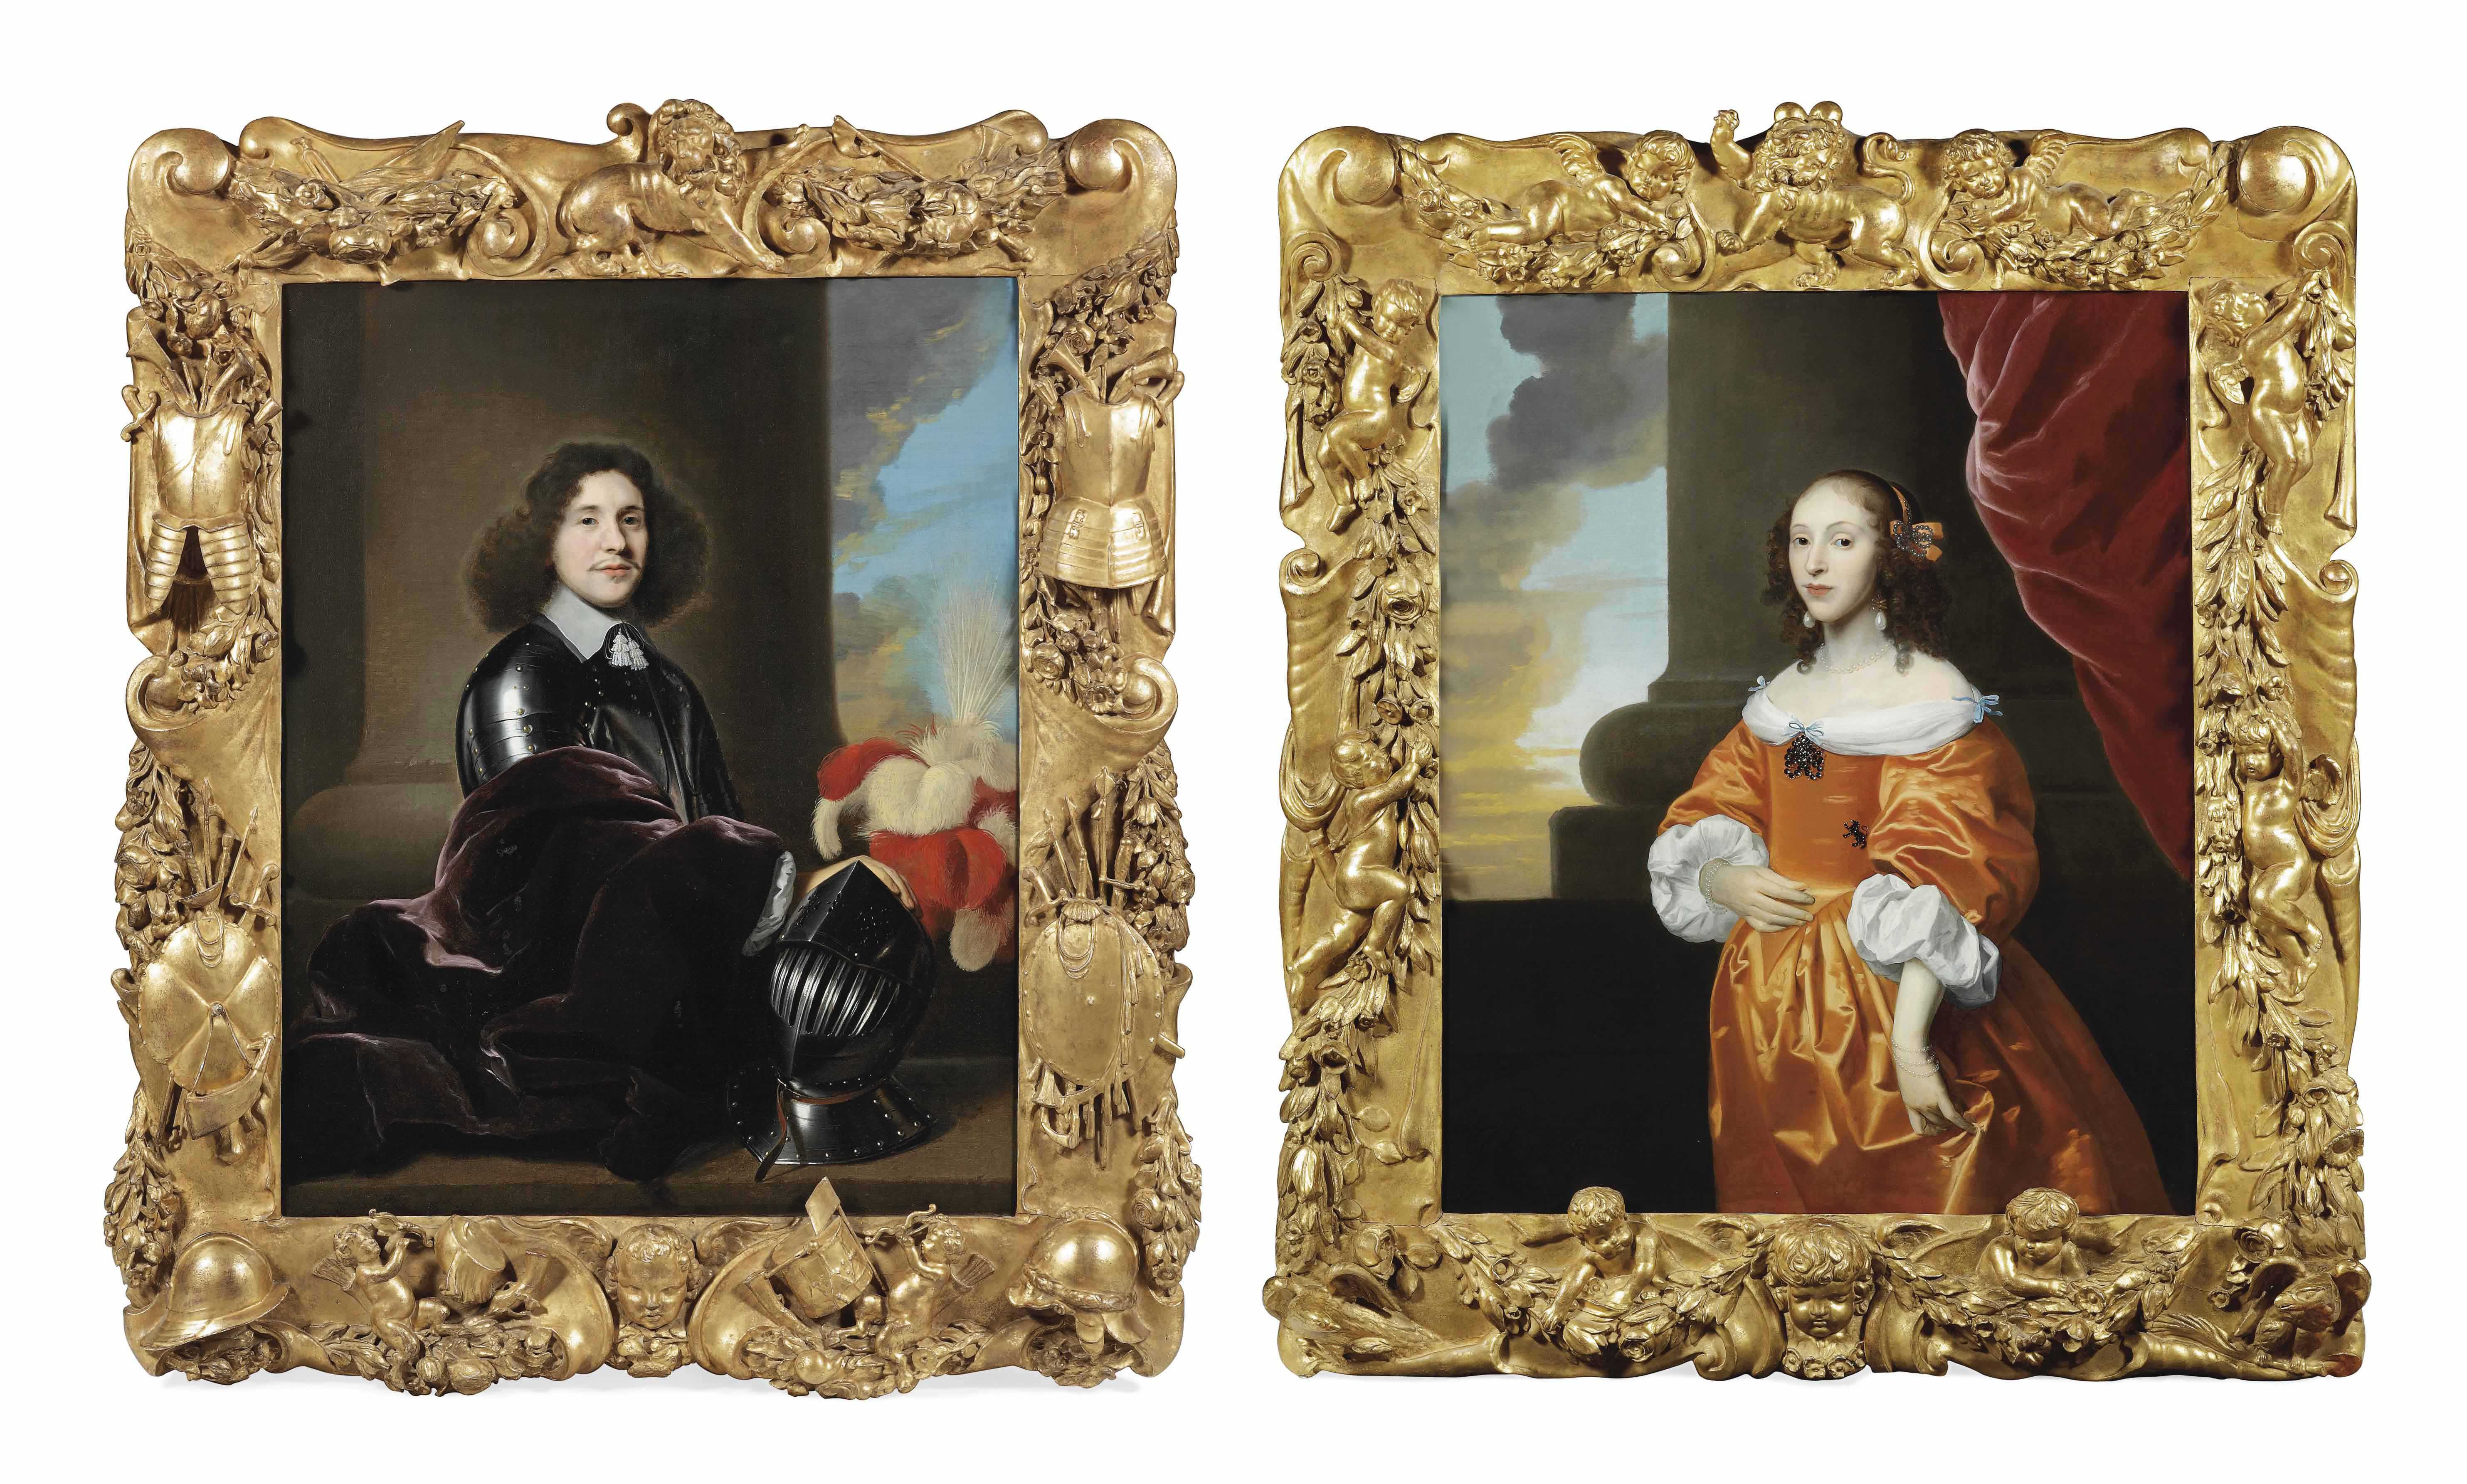 Portrait of possibly the Stadholder of Friesland and Groningen Willem Frederik van Nasau Dietz (1613-1664), half-length, in armour with a white collar and a purple velvet cloak over his right arm, standing behind a table with a red and white feathered helmet; and Portrait of possibly Princess Albertine Agnes van Oranje-Nassau (1634-1696), half-length, in an orange dress with white cuffs and a diamond brooch, standing before a column and a red curtain